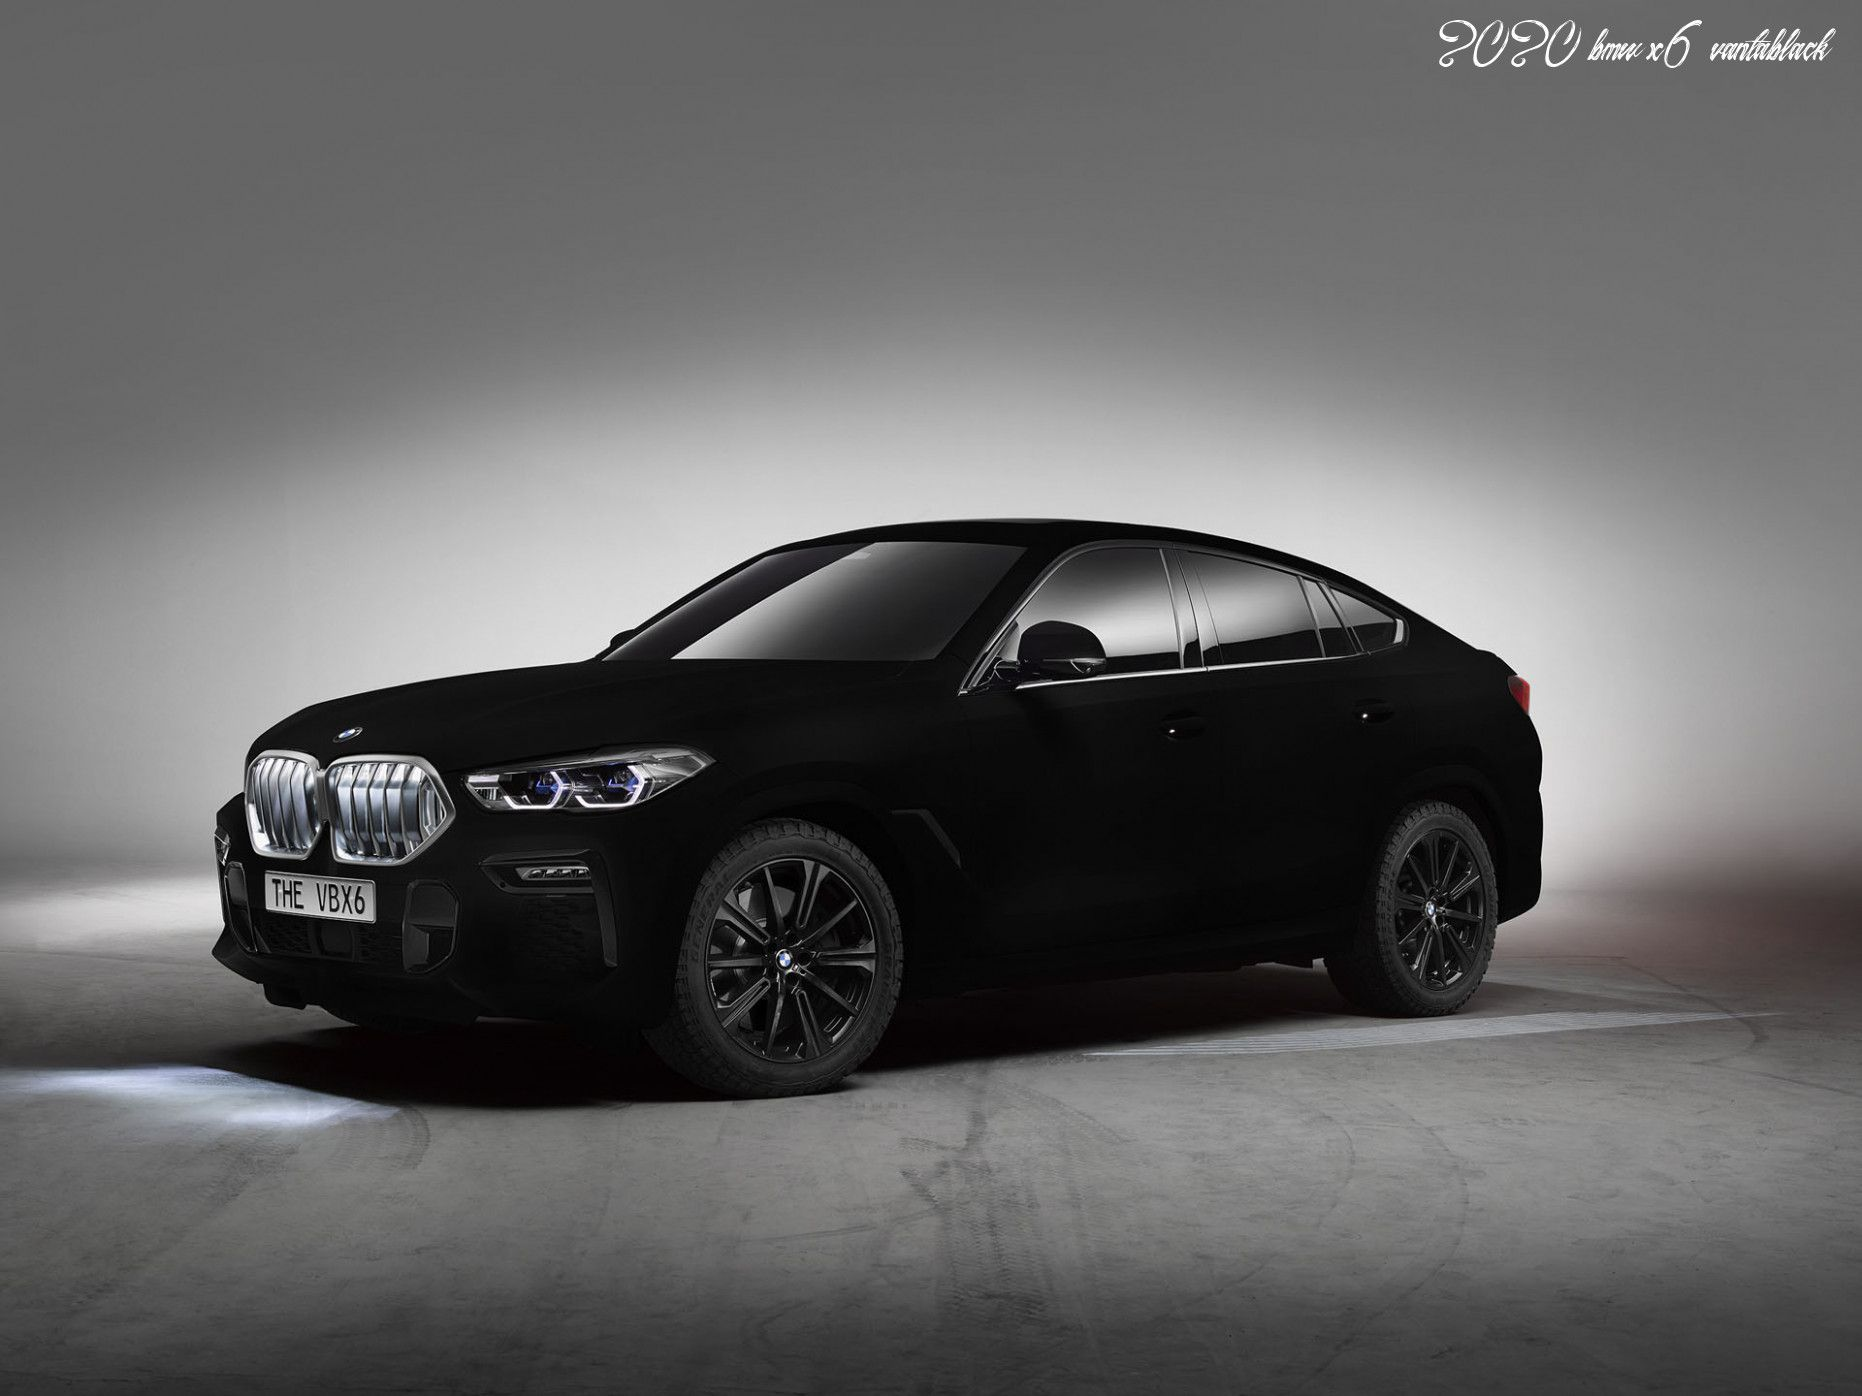 2020 Bmw X6 Vantablack In 2020 Bmw X6 Bmw Black Bmw